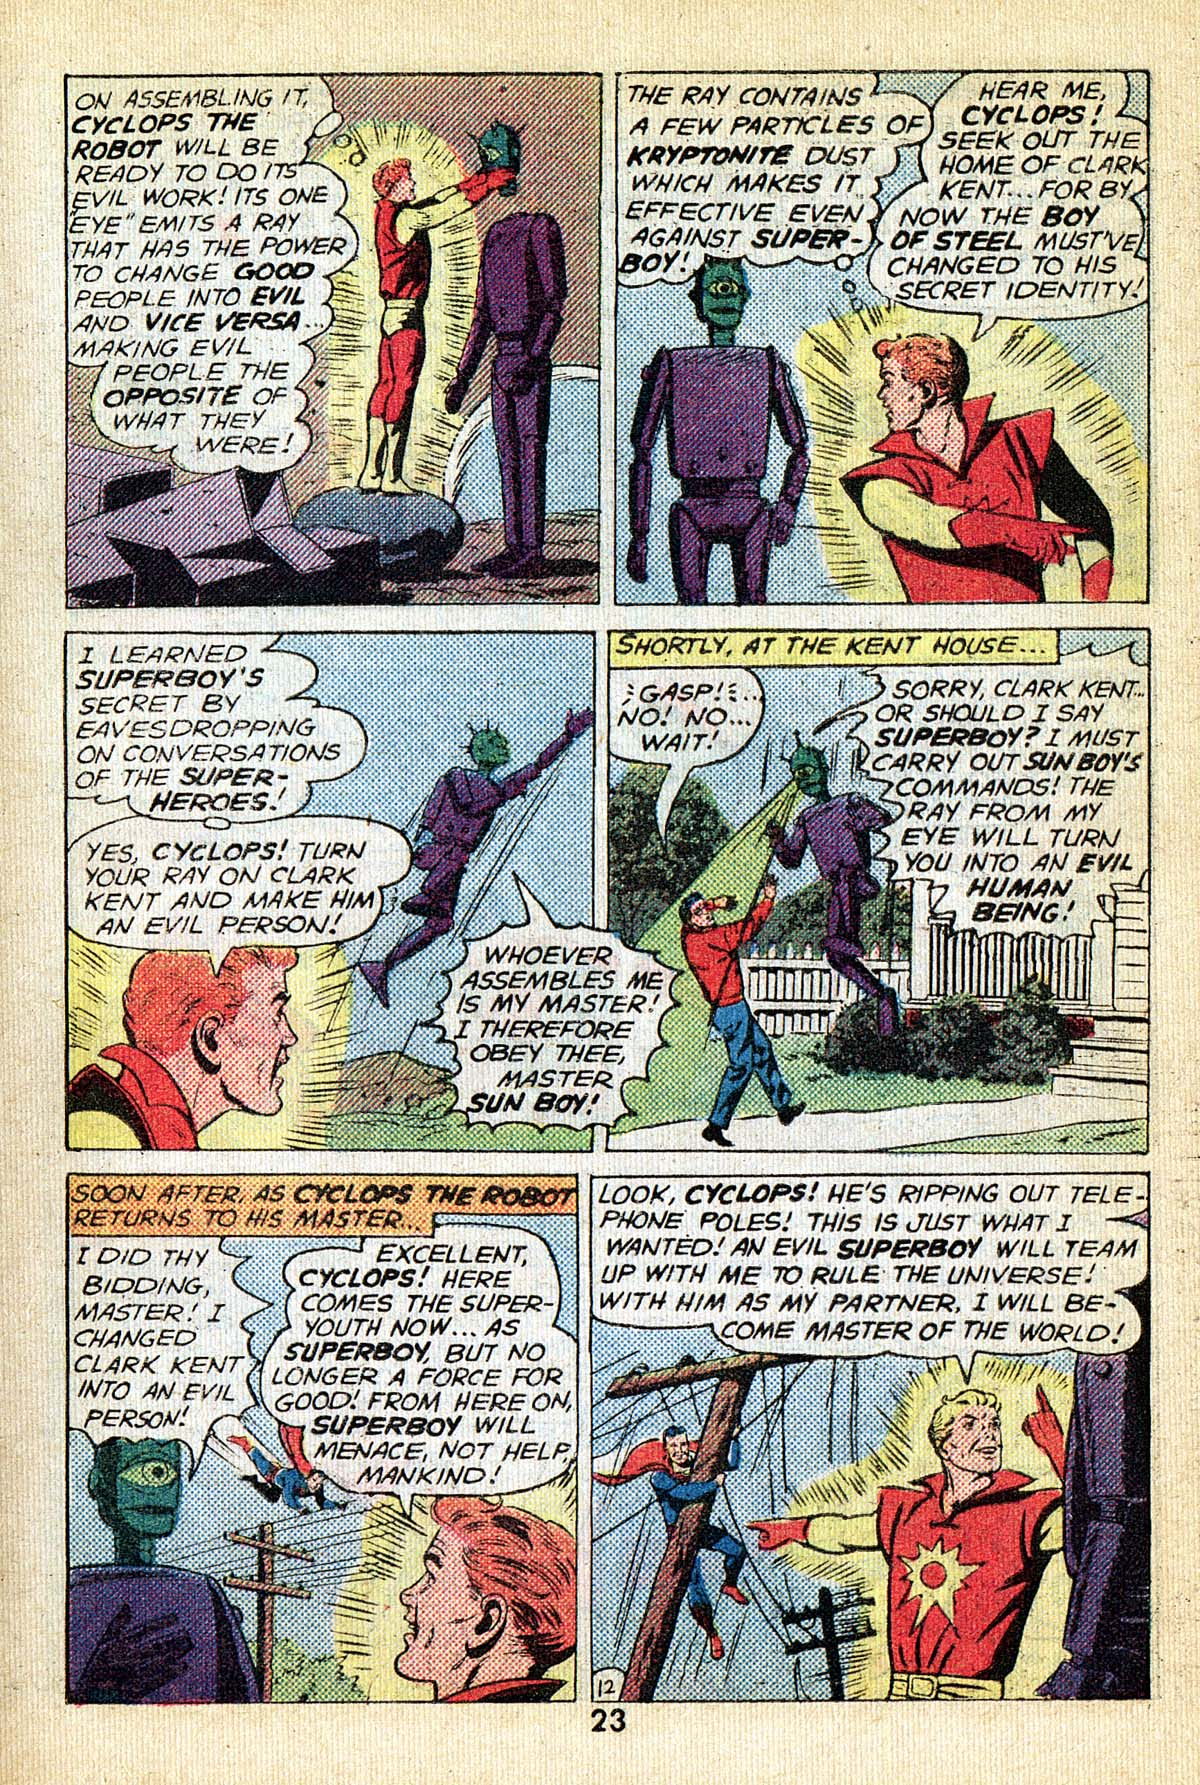 Read online Adventure Comics (1938) comic -  Issue #495 - 23